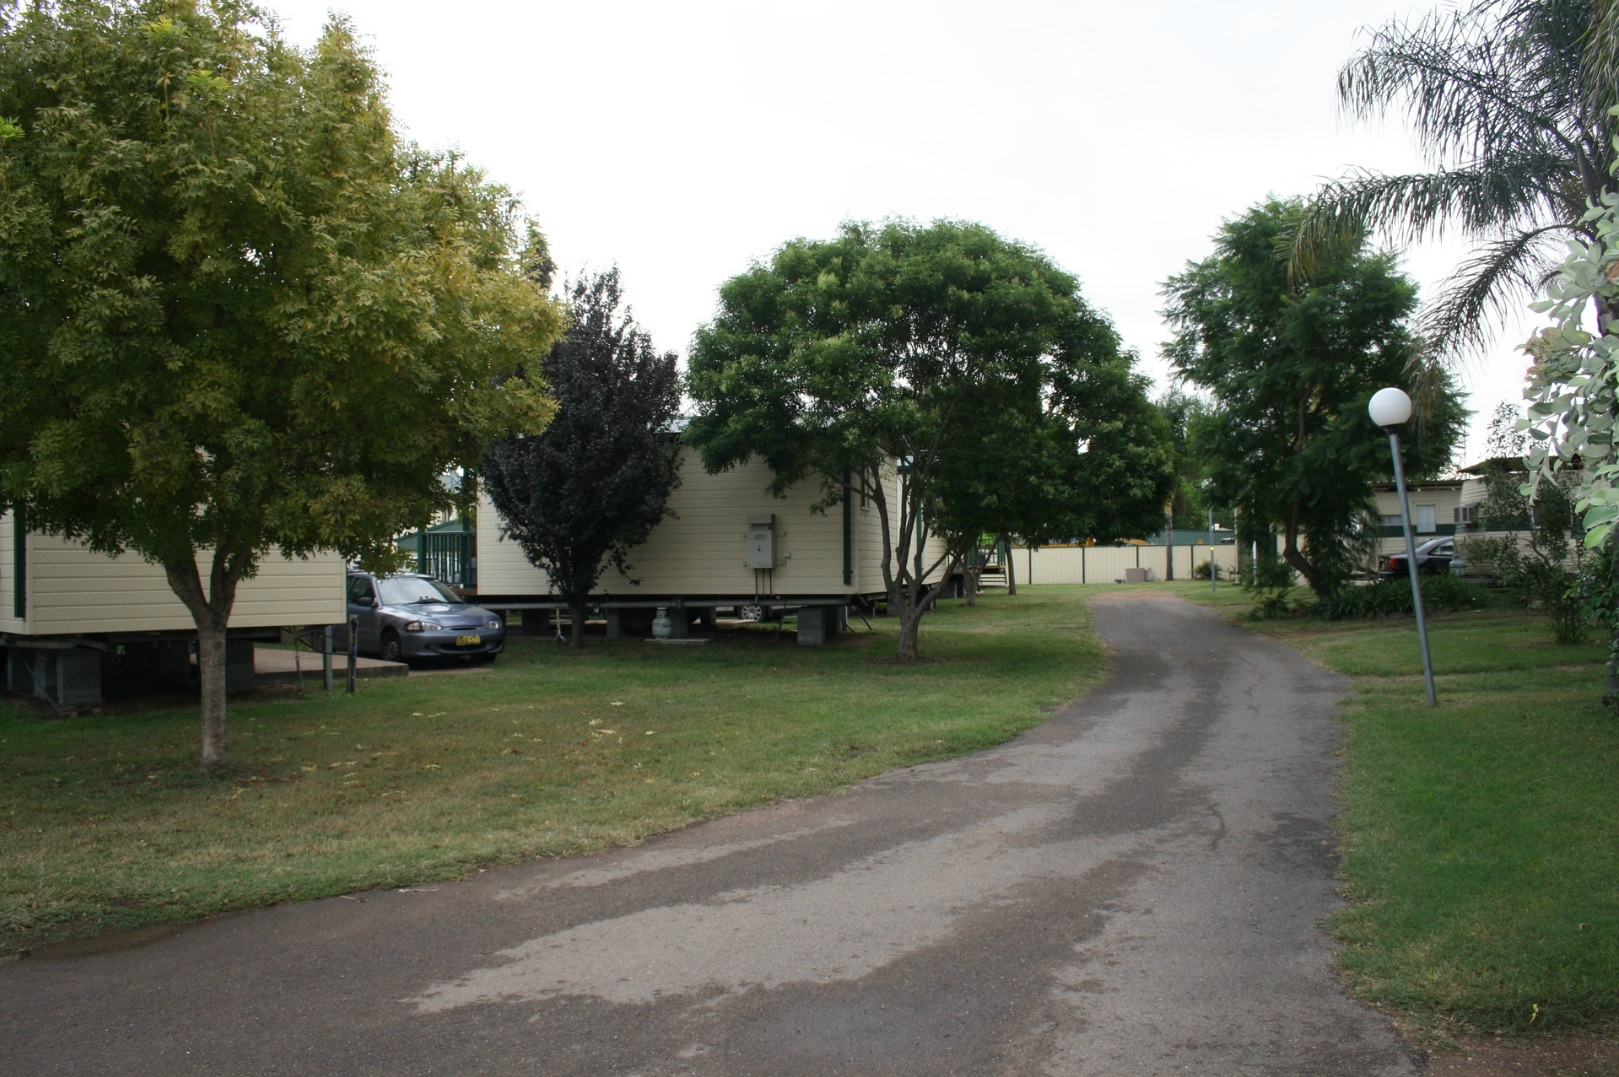 Wyland Caravan Park - Singleton photo 5